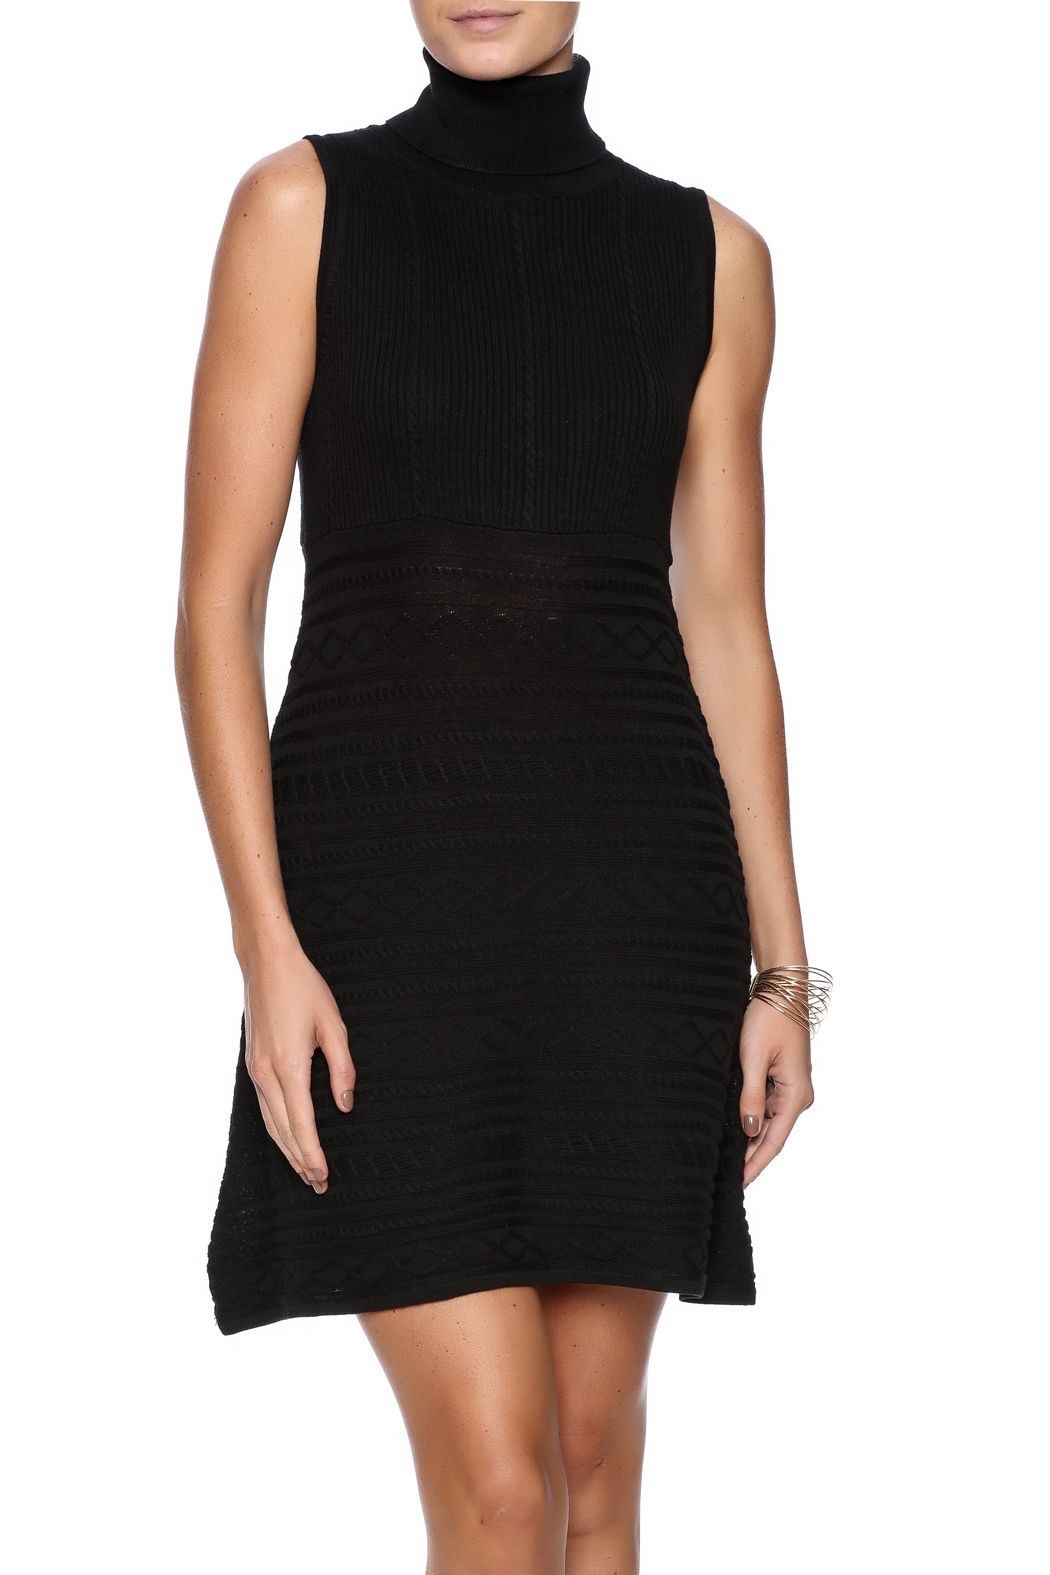 df9108a2f9f3ec Sleeveless turtleneck knit dress with a fit and flare cut. Sweater Knit  Dress by Julie Brown NYC. Clothing - Dresses - Sweater Clothing - Dresses -  LBD ...